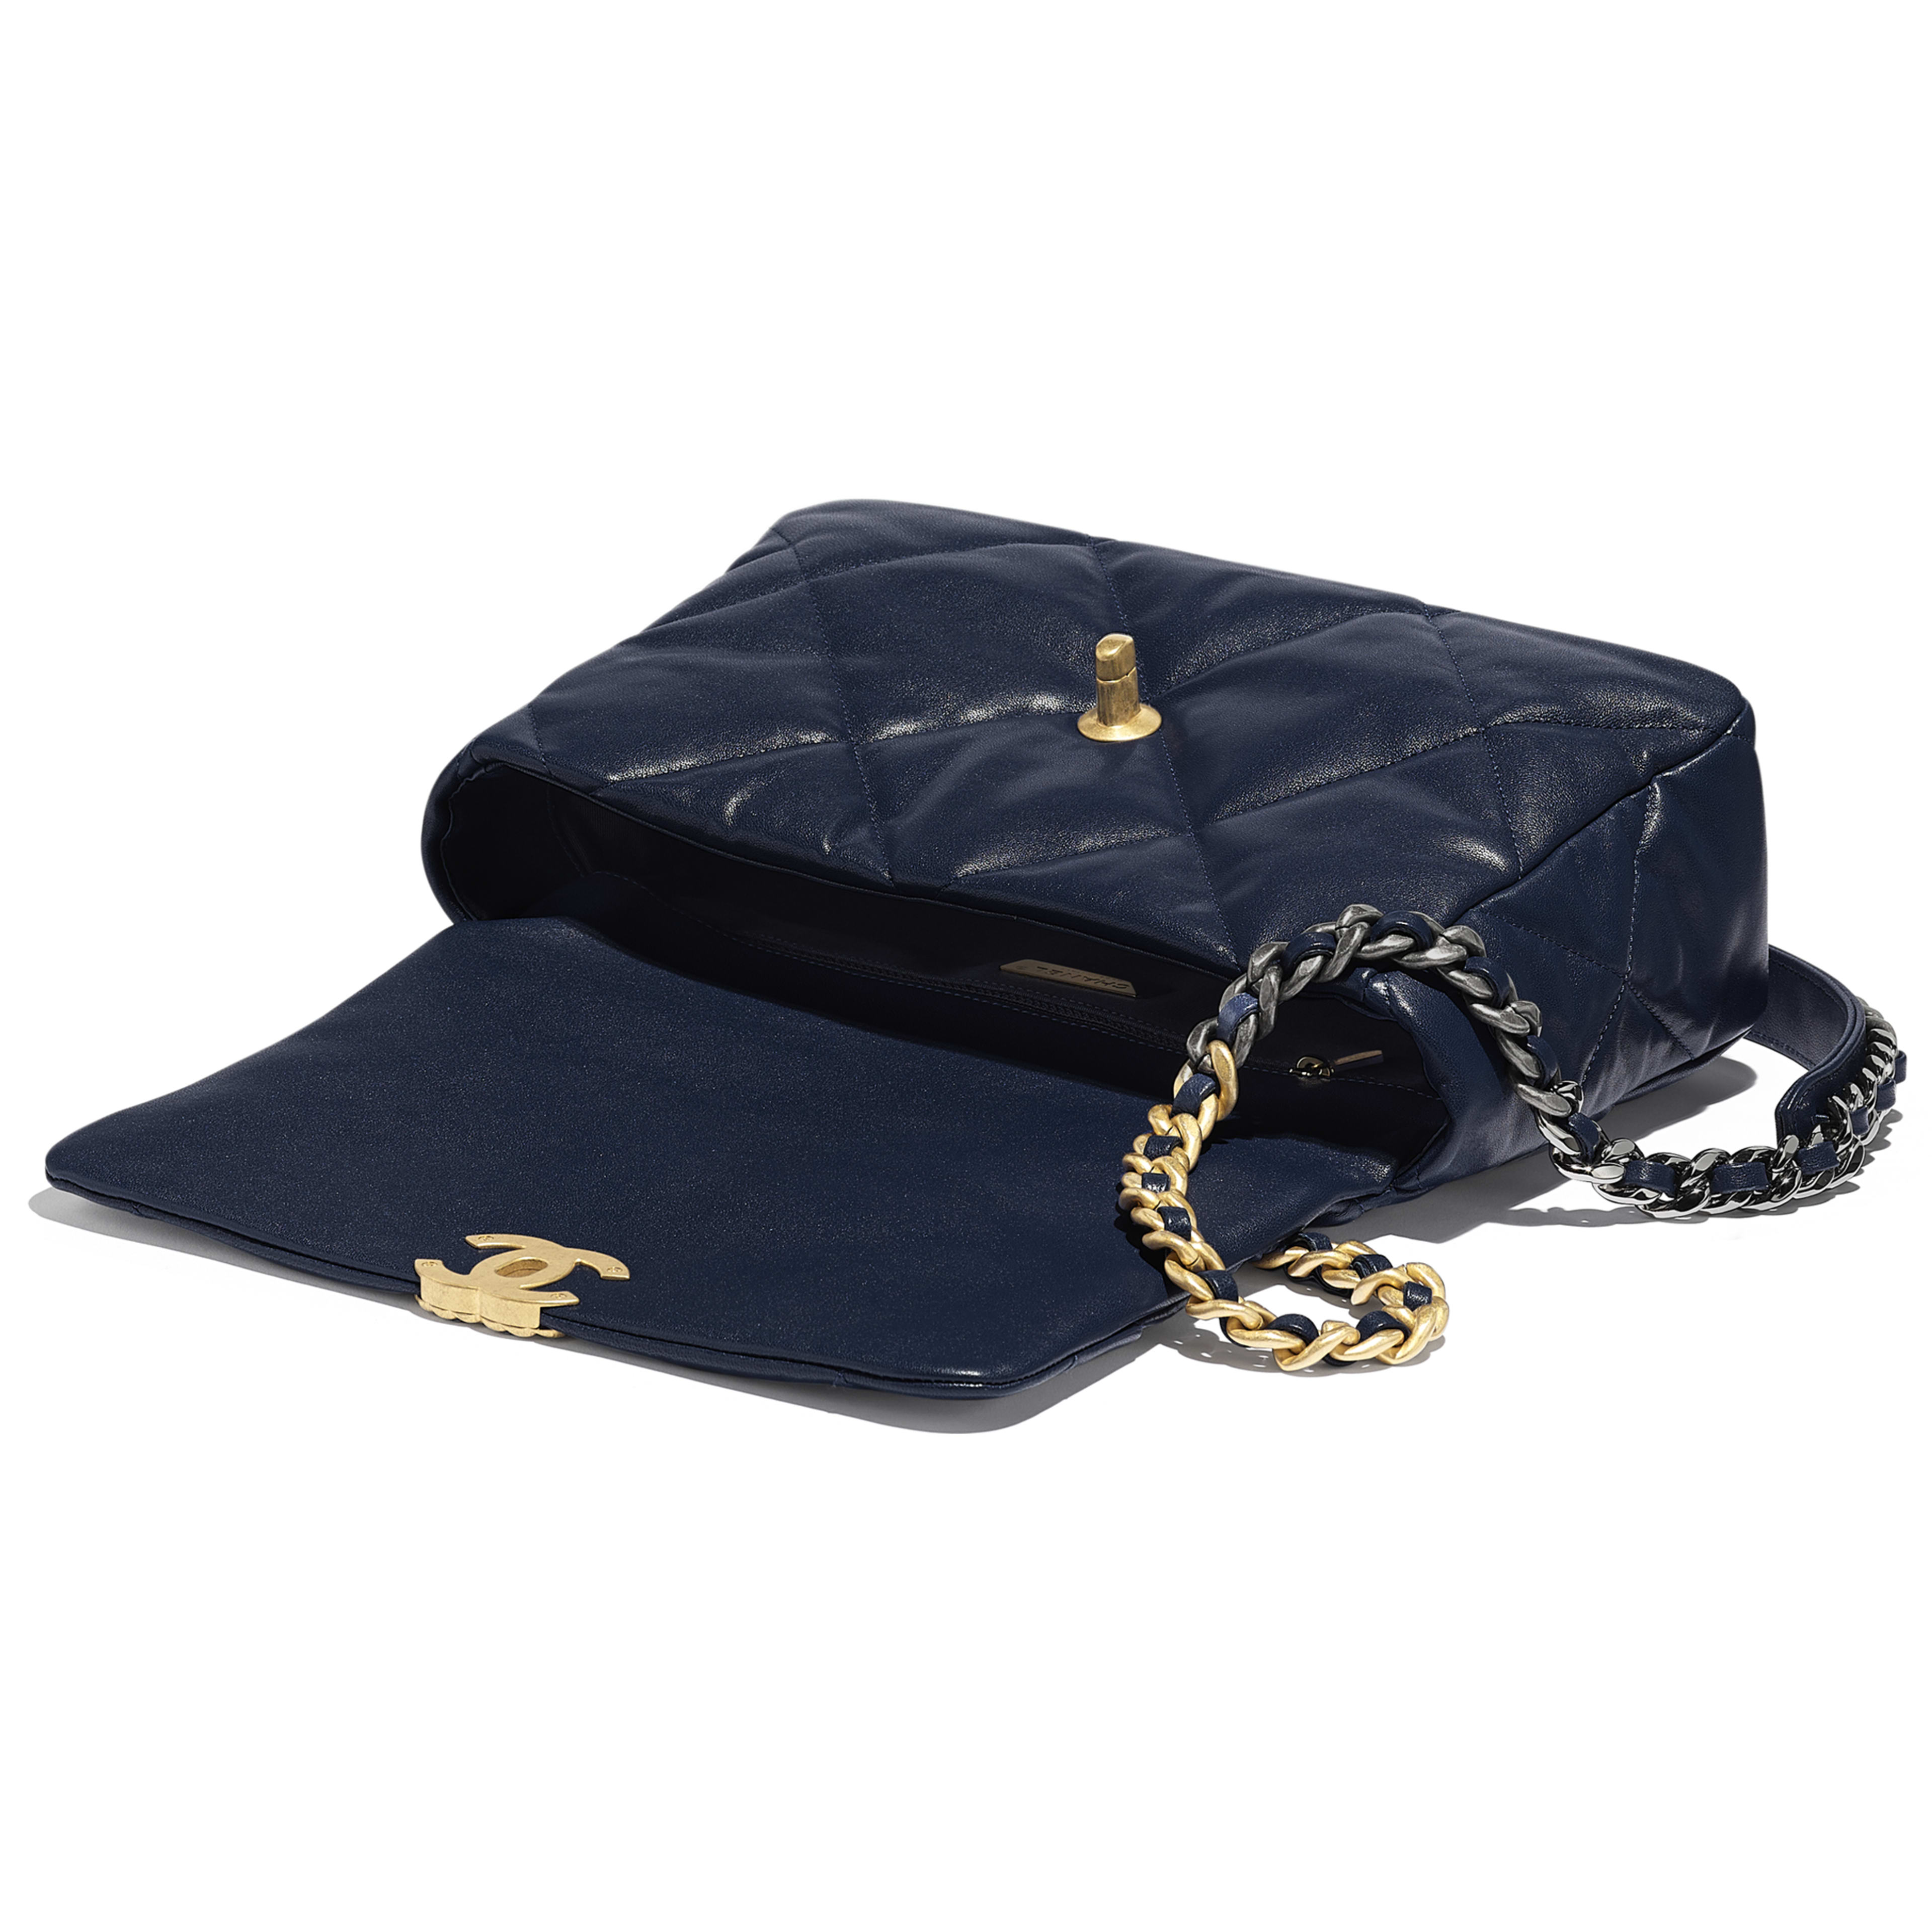 CHANEL 19 Large Flap Bag - Navy Blue - Lambskin, Gold-Tone, Silver-Tone & Ruthenium-Finish Metal - Other view - see full sized version